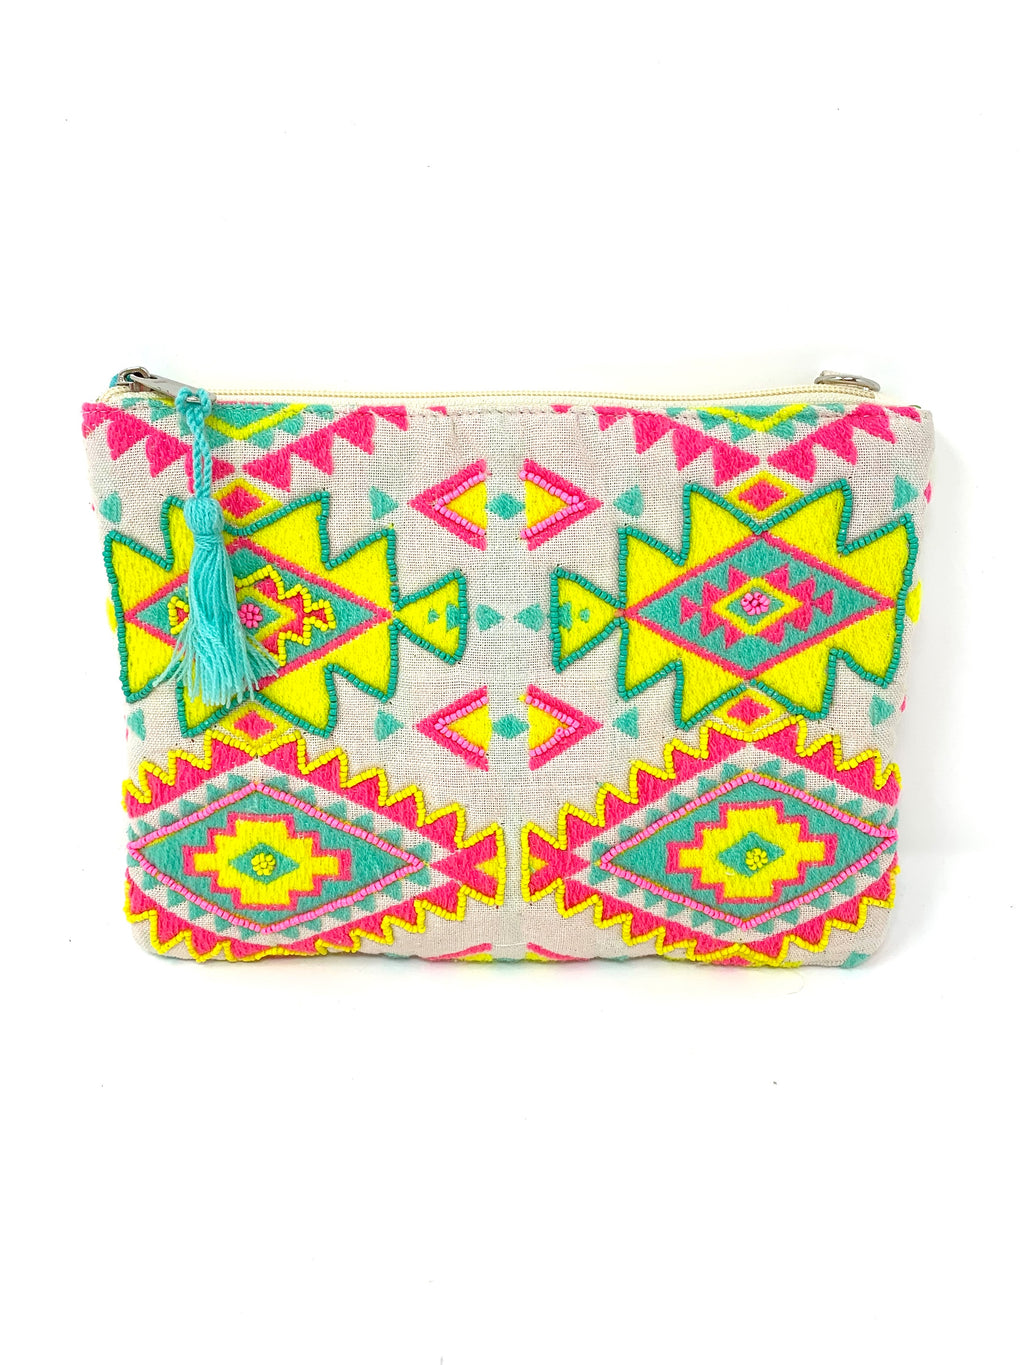 Embellished Pouch with Strap (available in 6 colors)